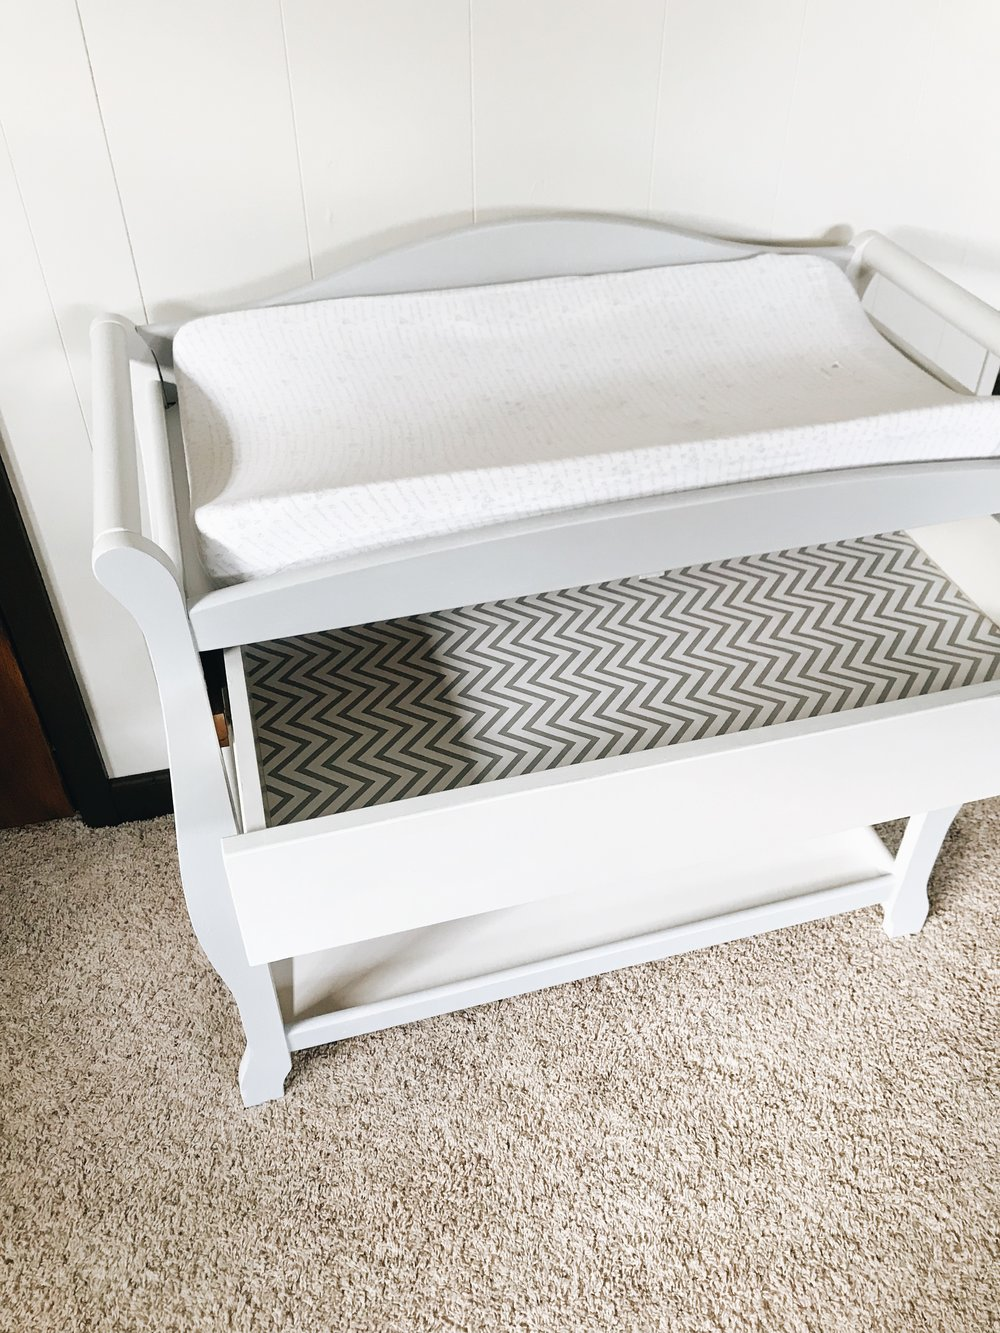 DIY Changing Table Makeover. How To Update a Hand-Me-Down Diaper Station.